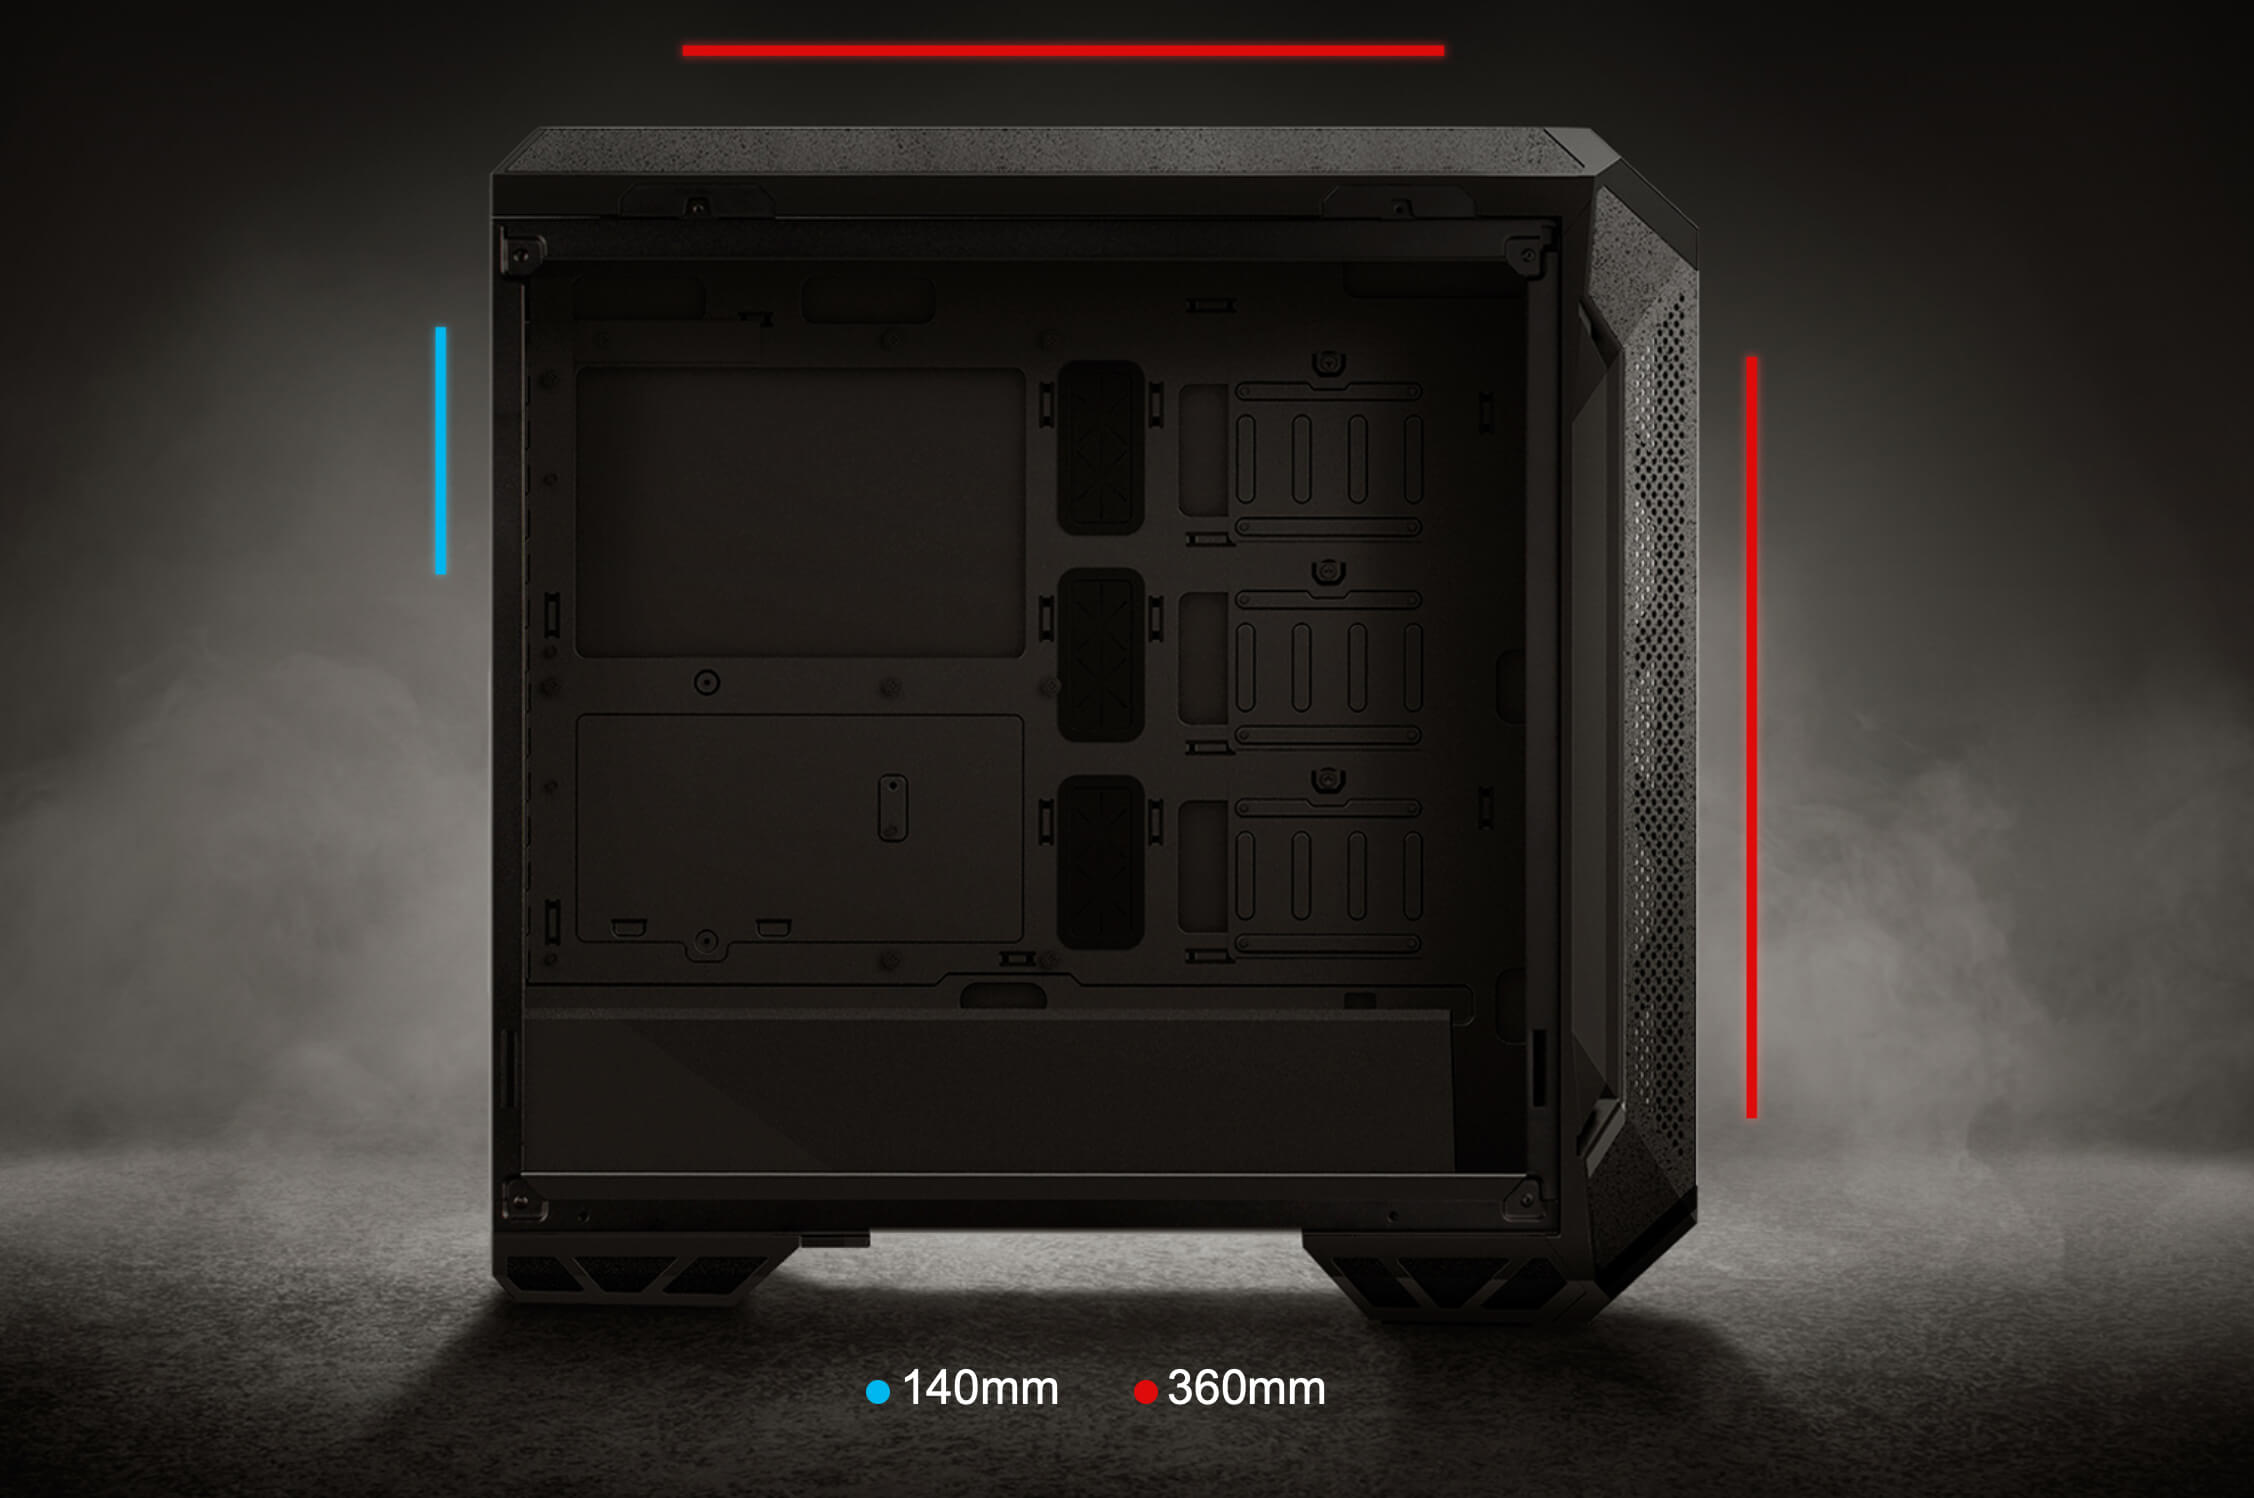 Asus Tuf Gaming Gt501vc Mid Tower Gaming Case Features 04